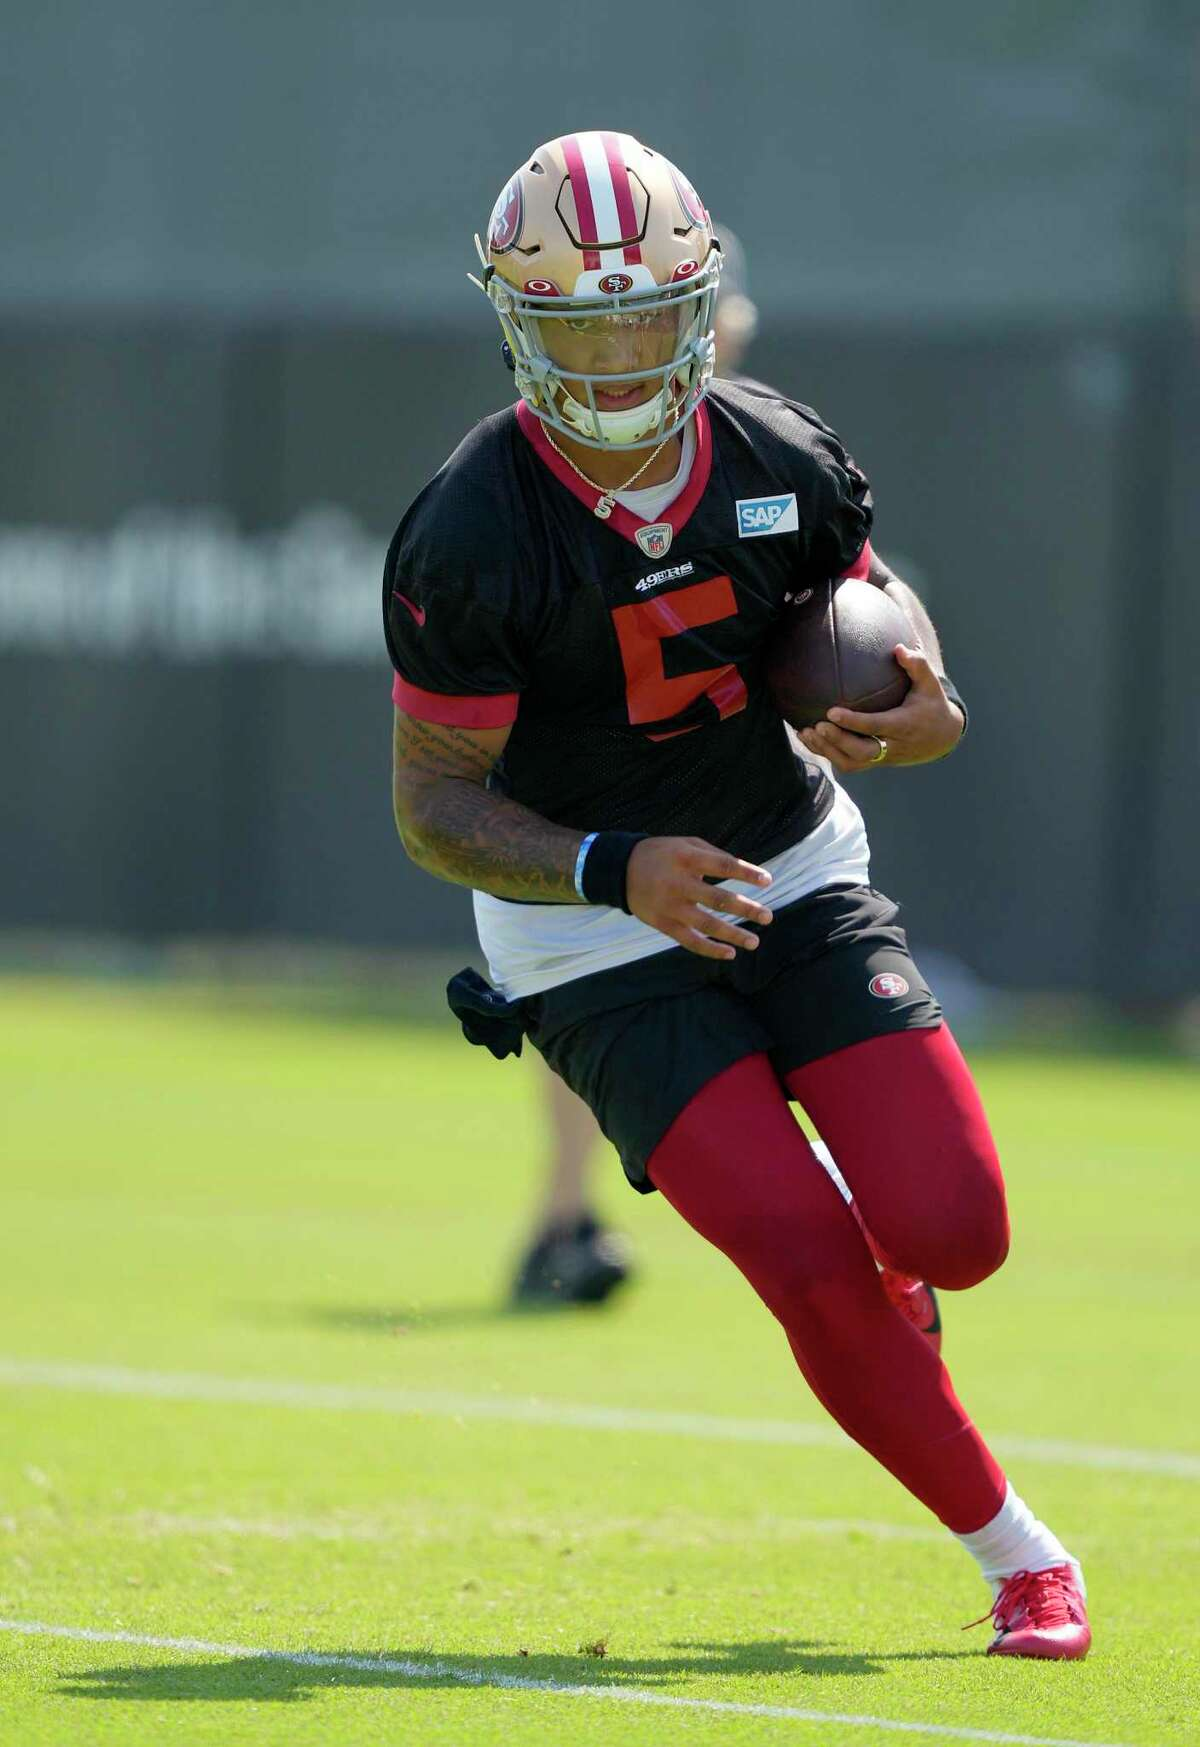 SANTA CLARA, CALIFORNIA - JULY 30: Trey Lance #5 of the San Francisco 49ers works out during training camp at SAP Performance Facility on July 30, 2021 in Santa Clara, California. (Photo by Thearon W. Henderson/Getty Images)